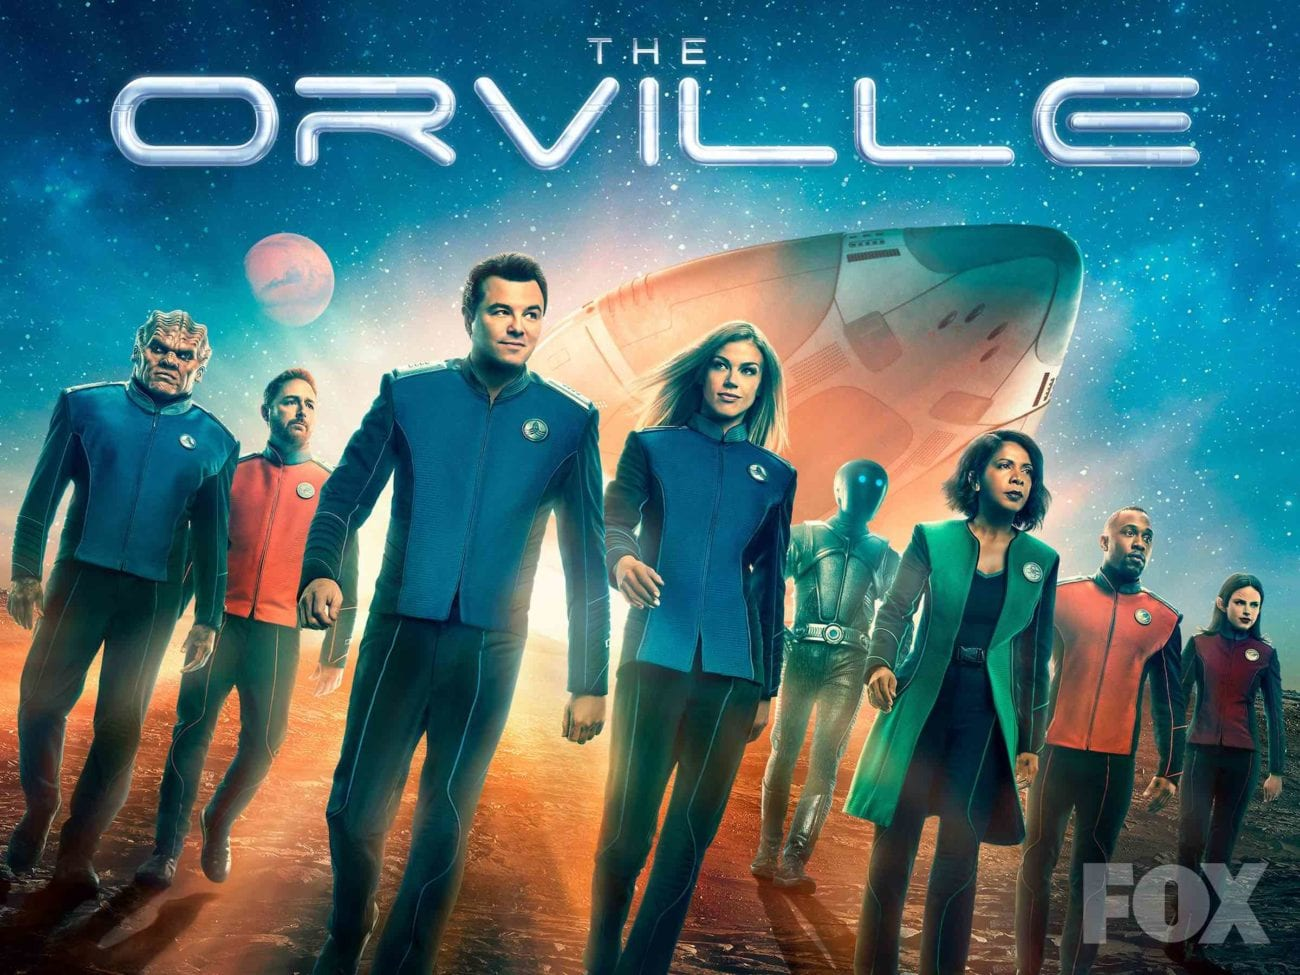 Fox's 'The Orville' has found its niche in awkward. Let's take a look back at the first 2 seasons and hope that our relationships are easier than these.